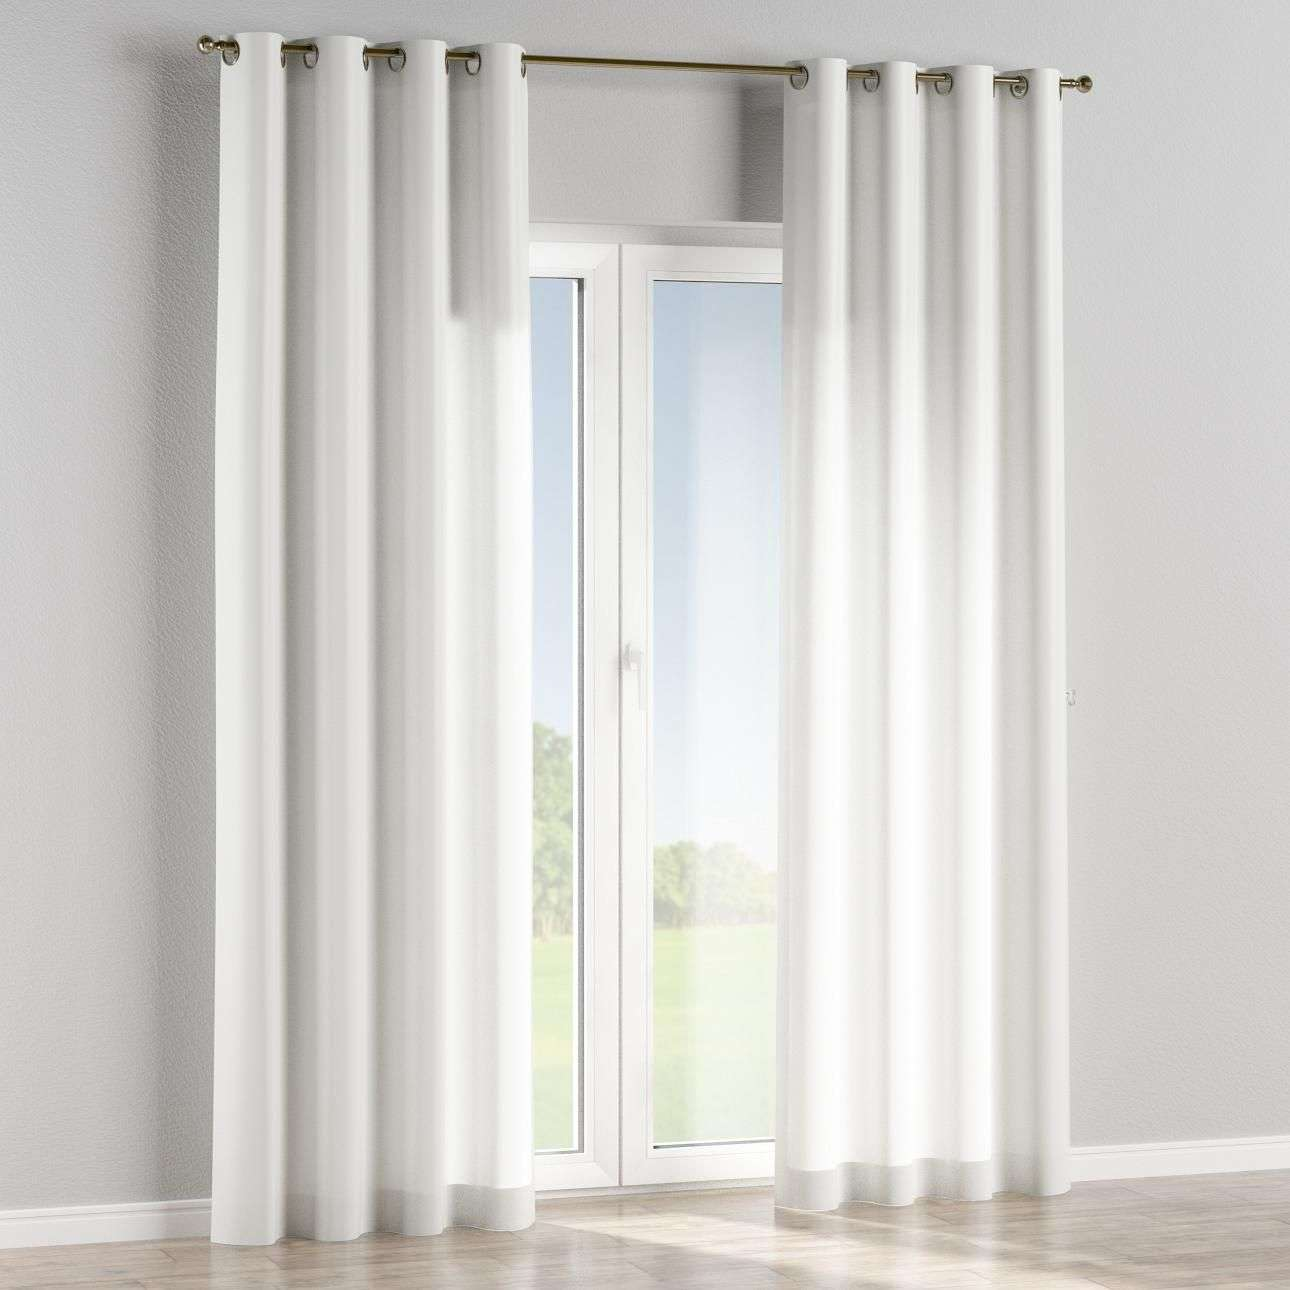 Eyelet curtains in collection Norge, fabric: 150-17